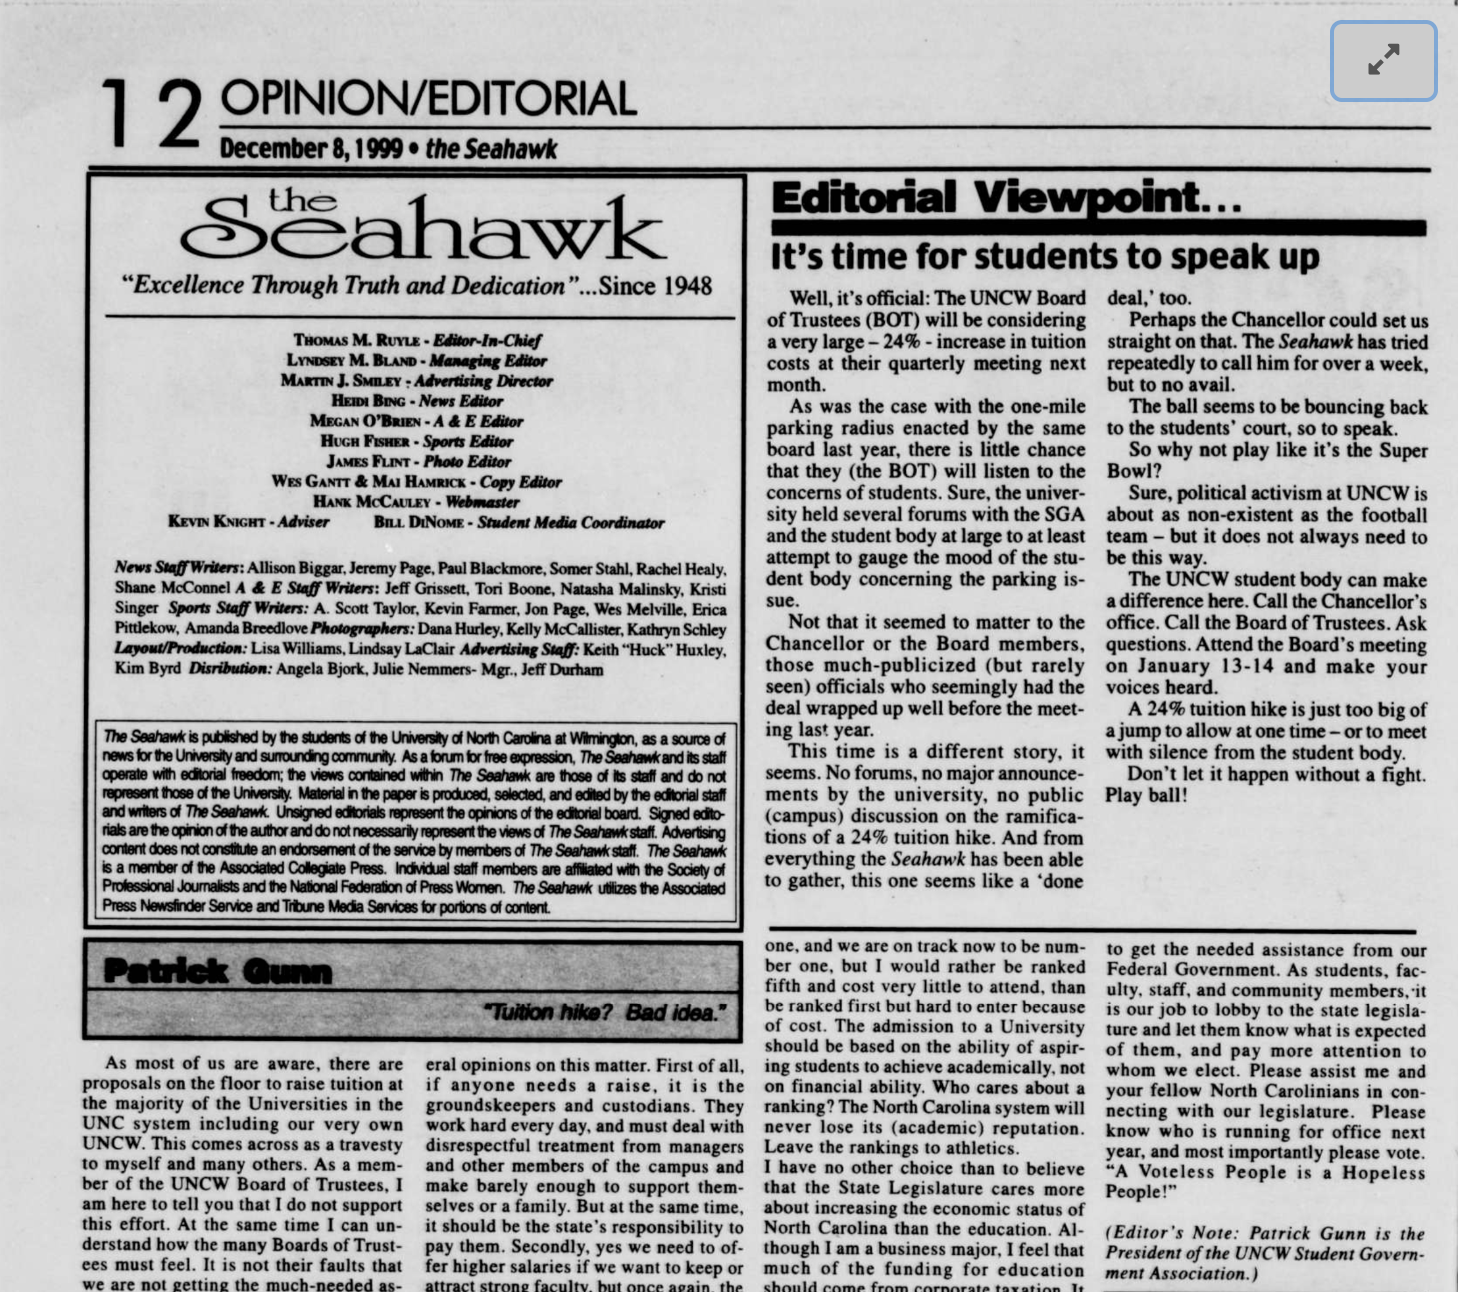 The opinion/editorial section of The Seahawk in 1999.